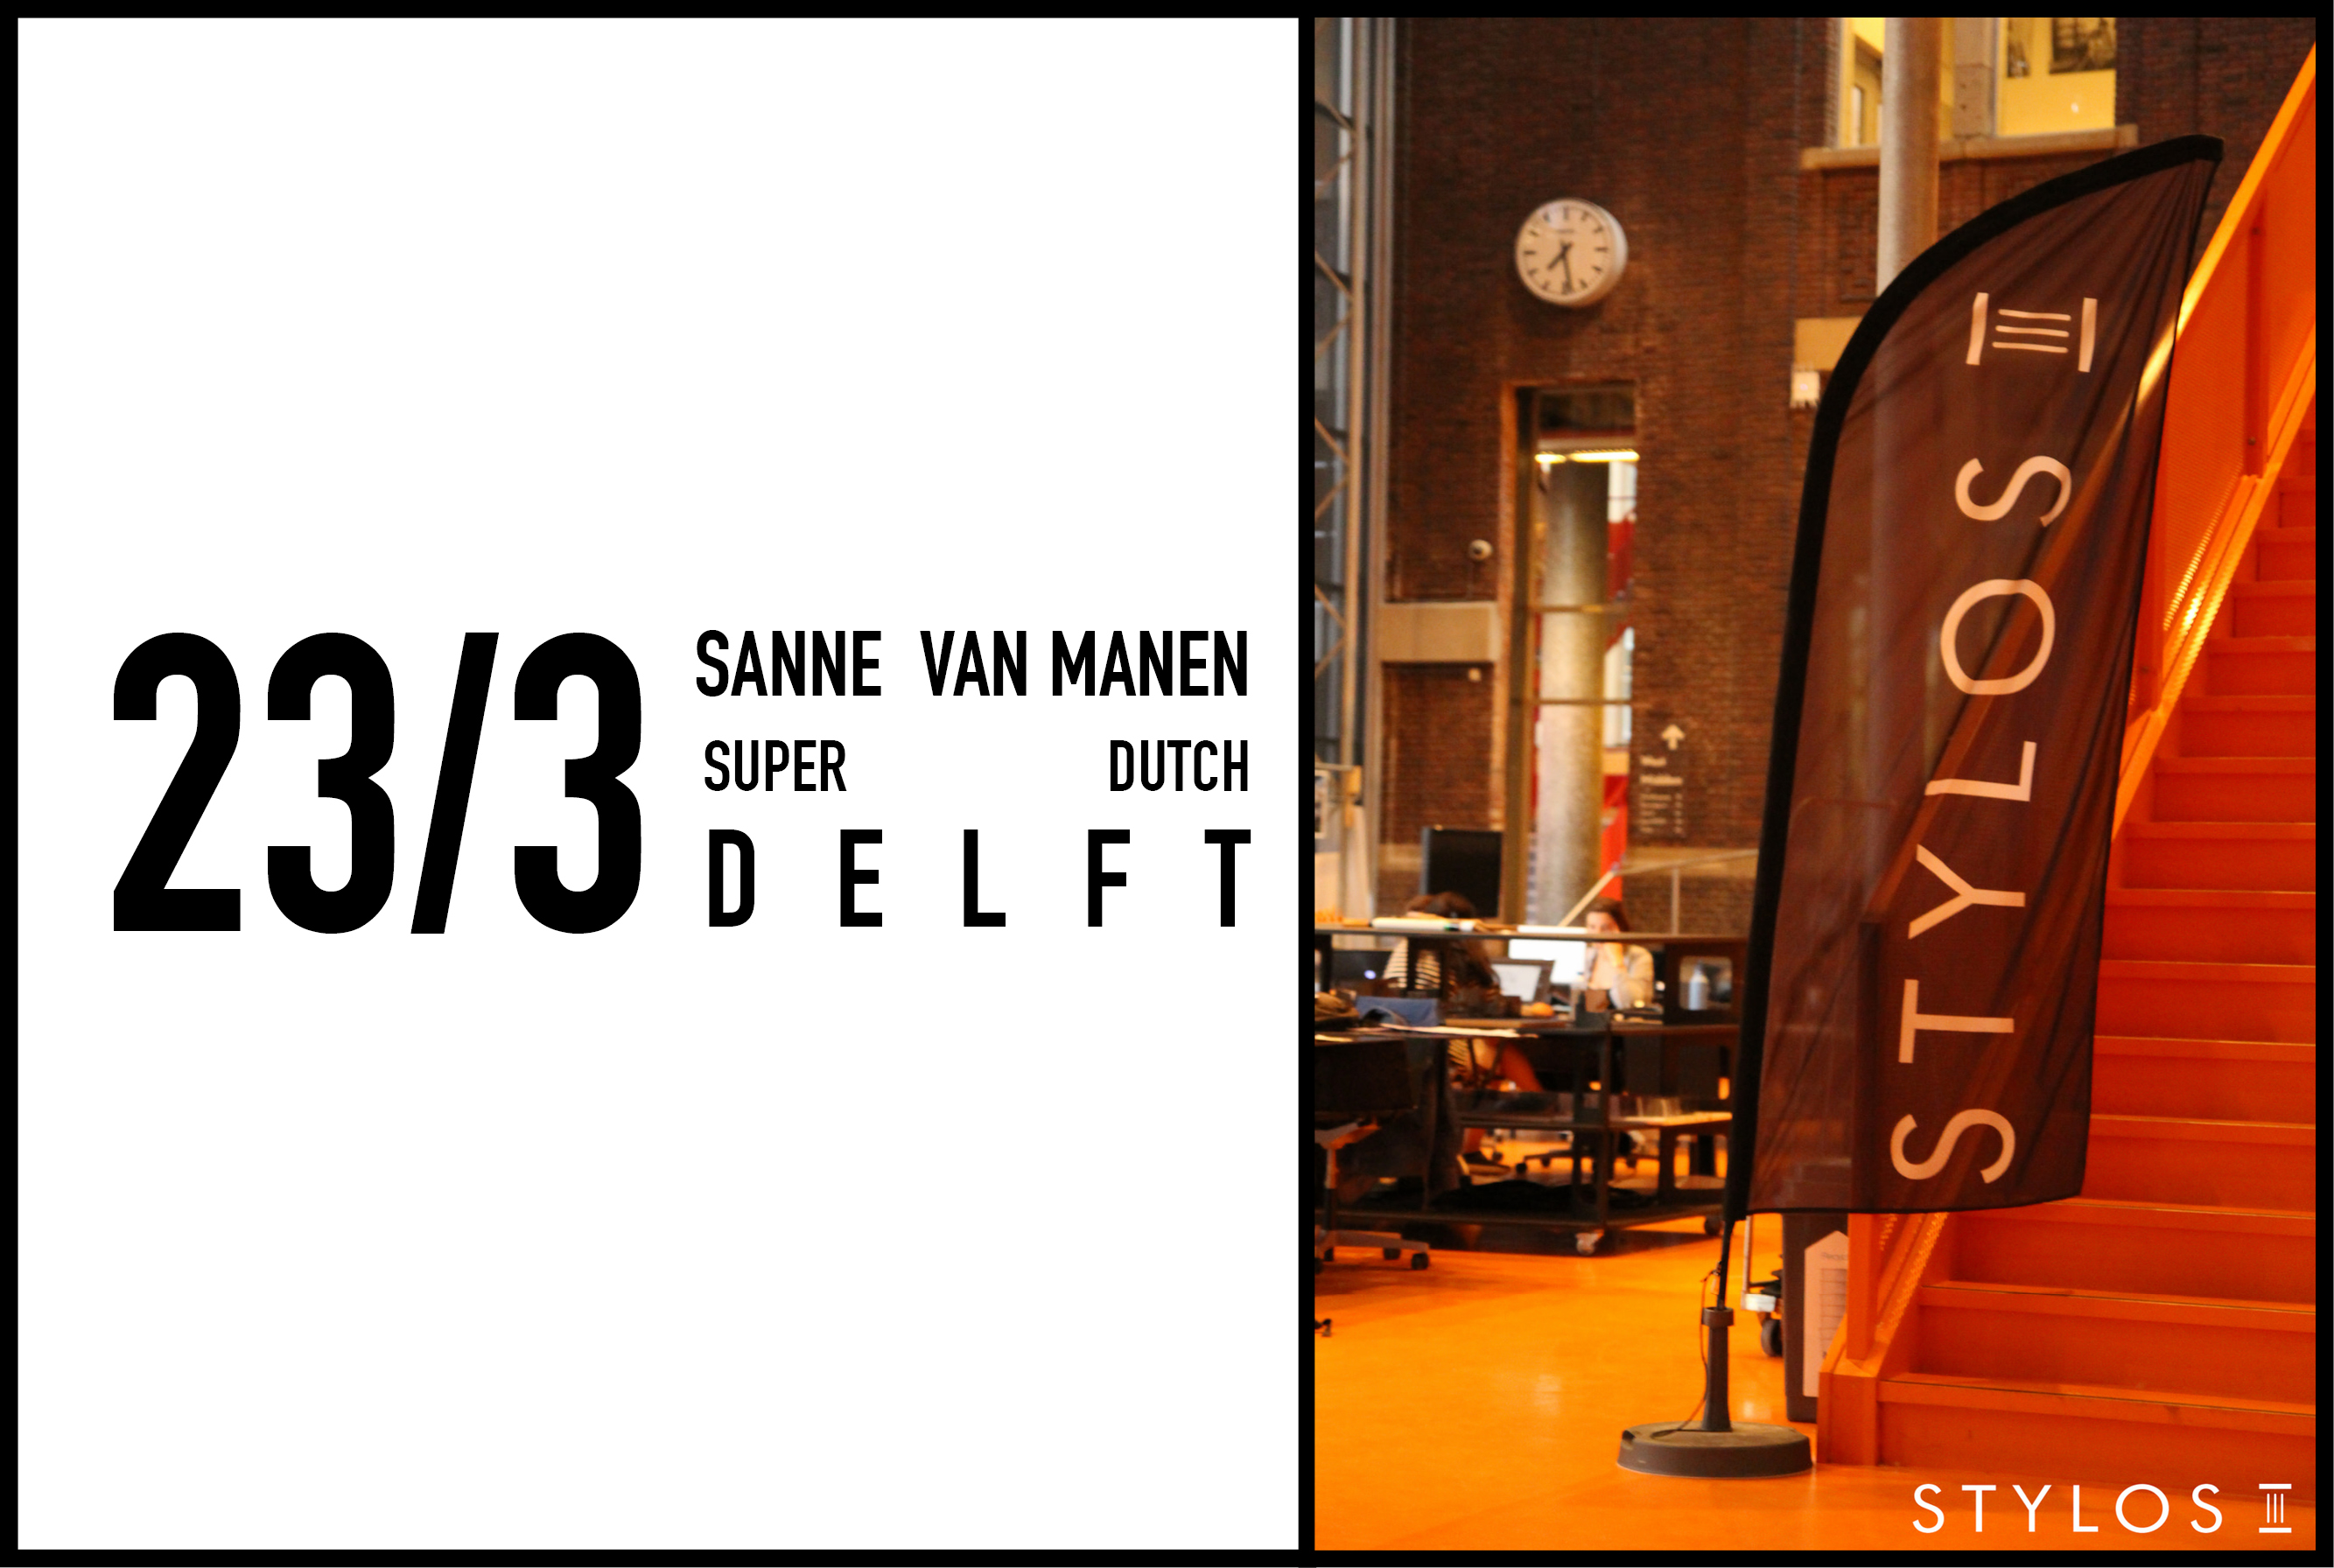 Sanne van Manen to give a lecture at TU Delft, 23 March 2017